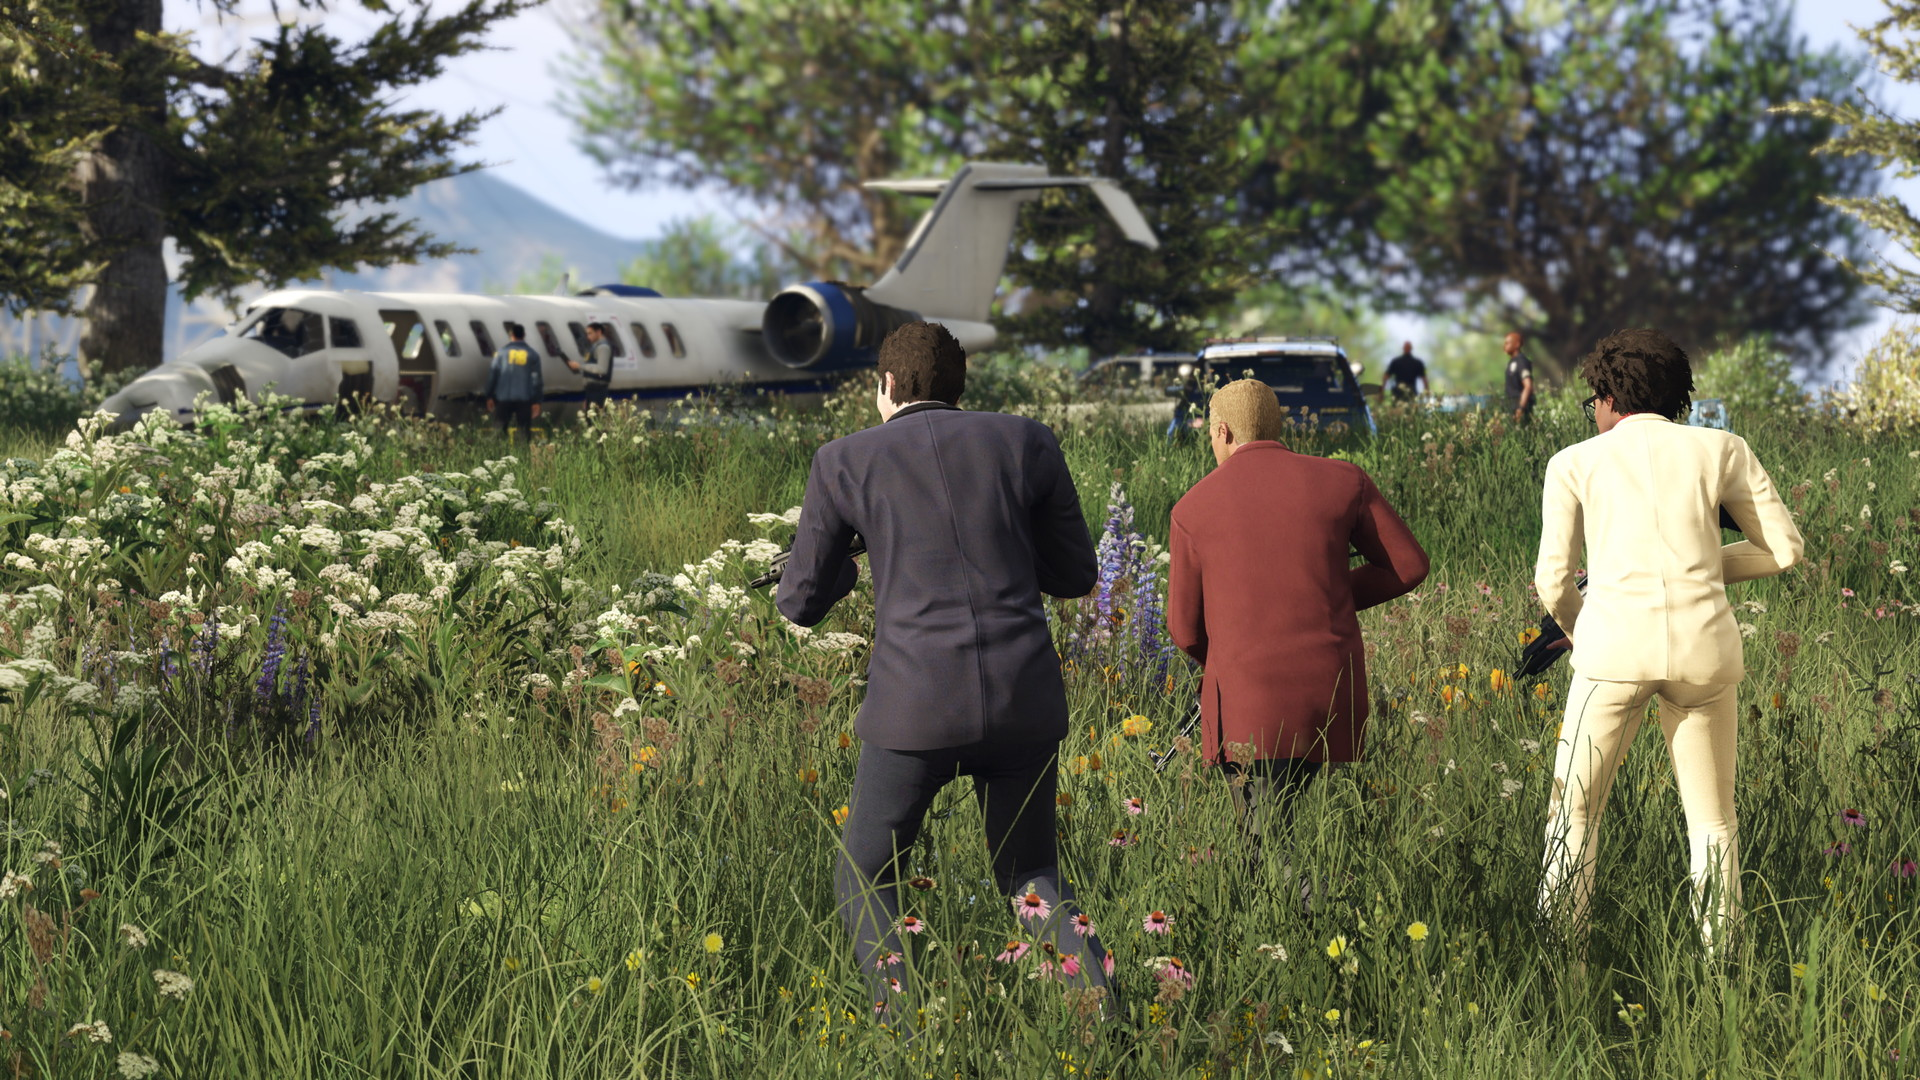 Buy Grand Theft Auto V for Rockstar Social Club on GGlitch com   Fast,  secure and easy!